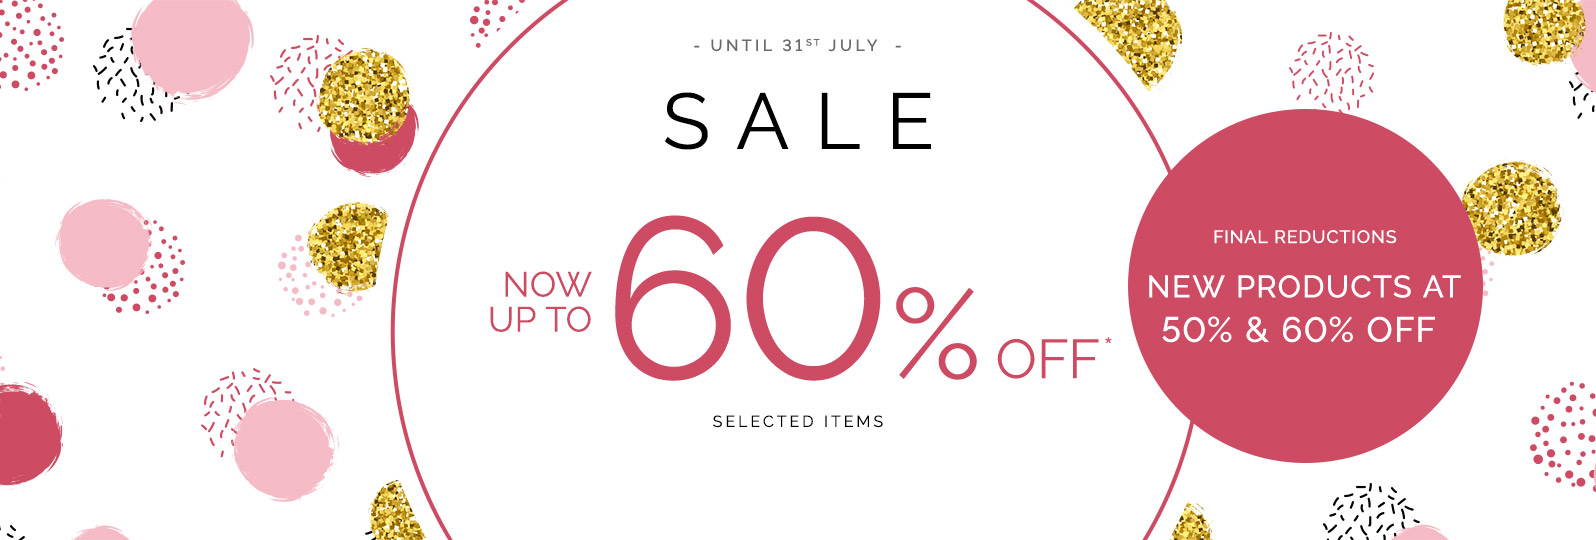 Sale - Up to 60% off* selected items